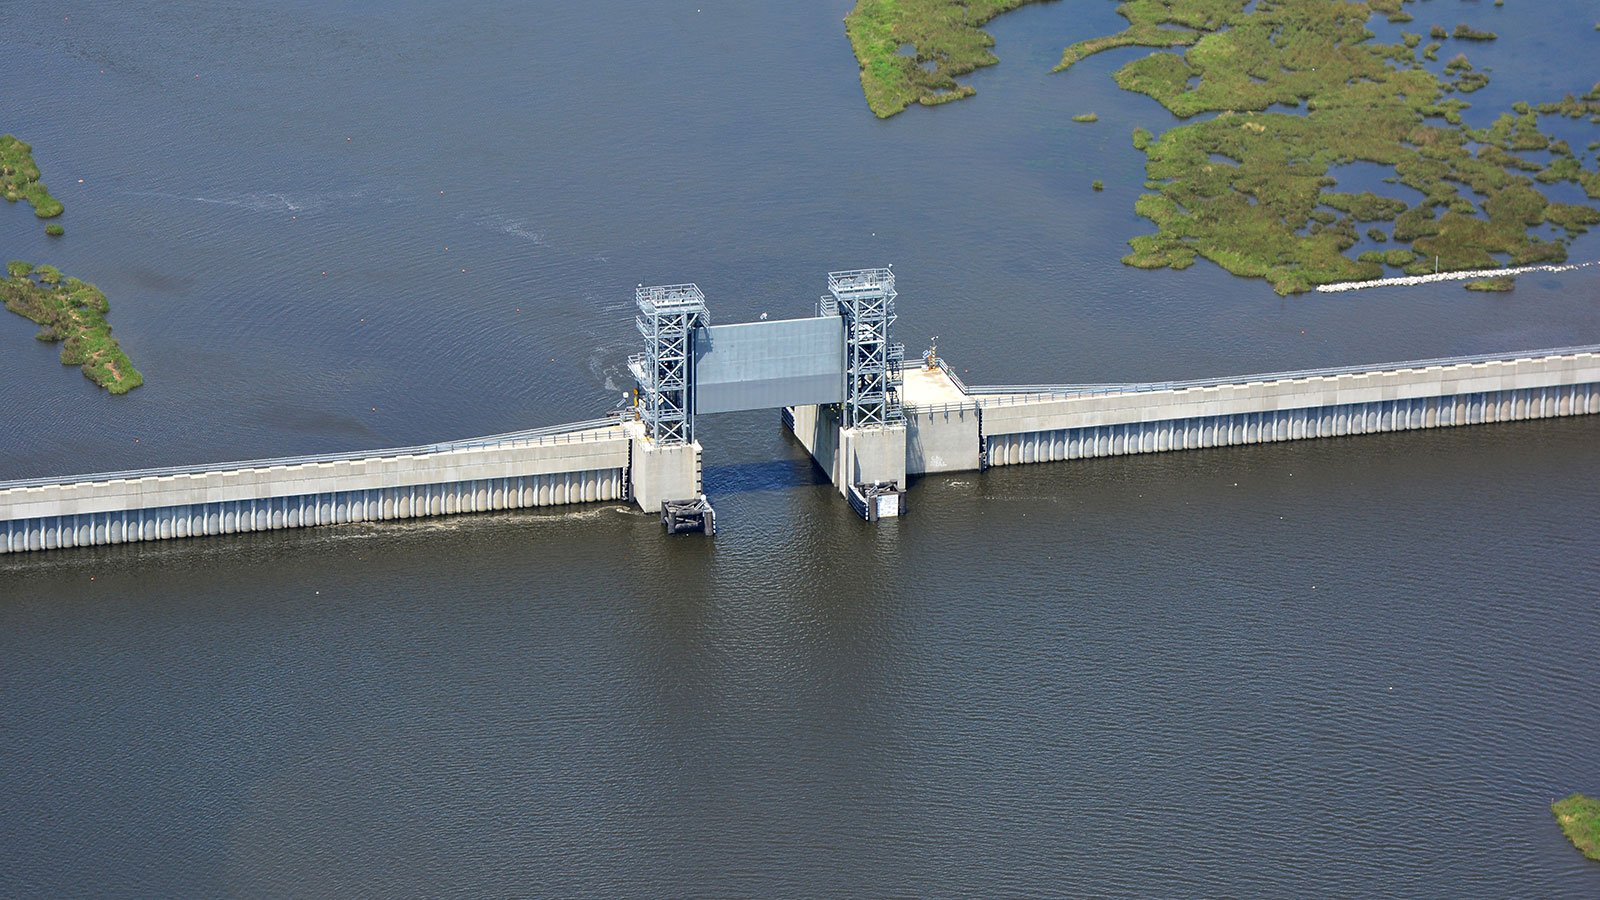 A navigation gate at the Inner Harbor Navigation Canal Lake Borgne Surge Barrier